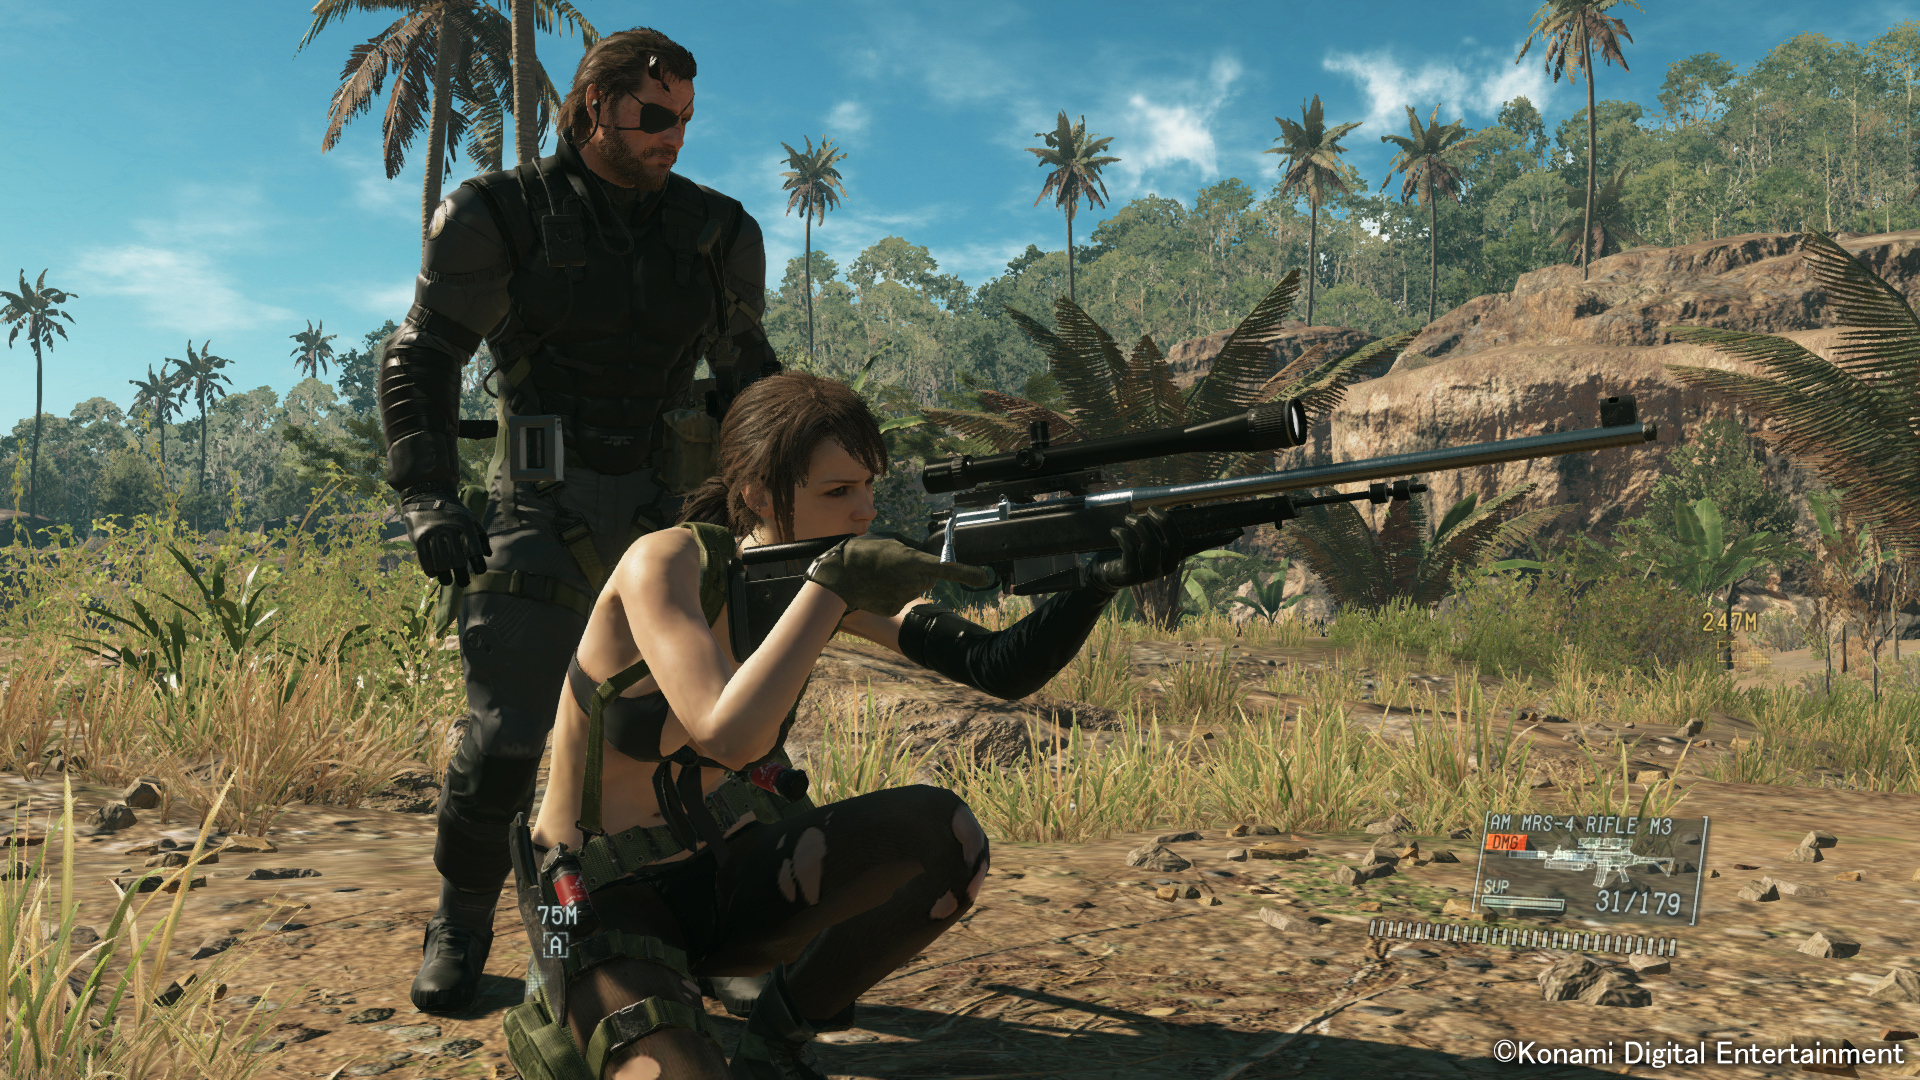 Gaming experience sharing of Metal Gear Sold V – The Phantom Pain